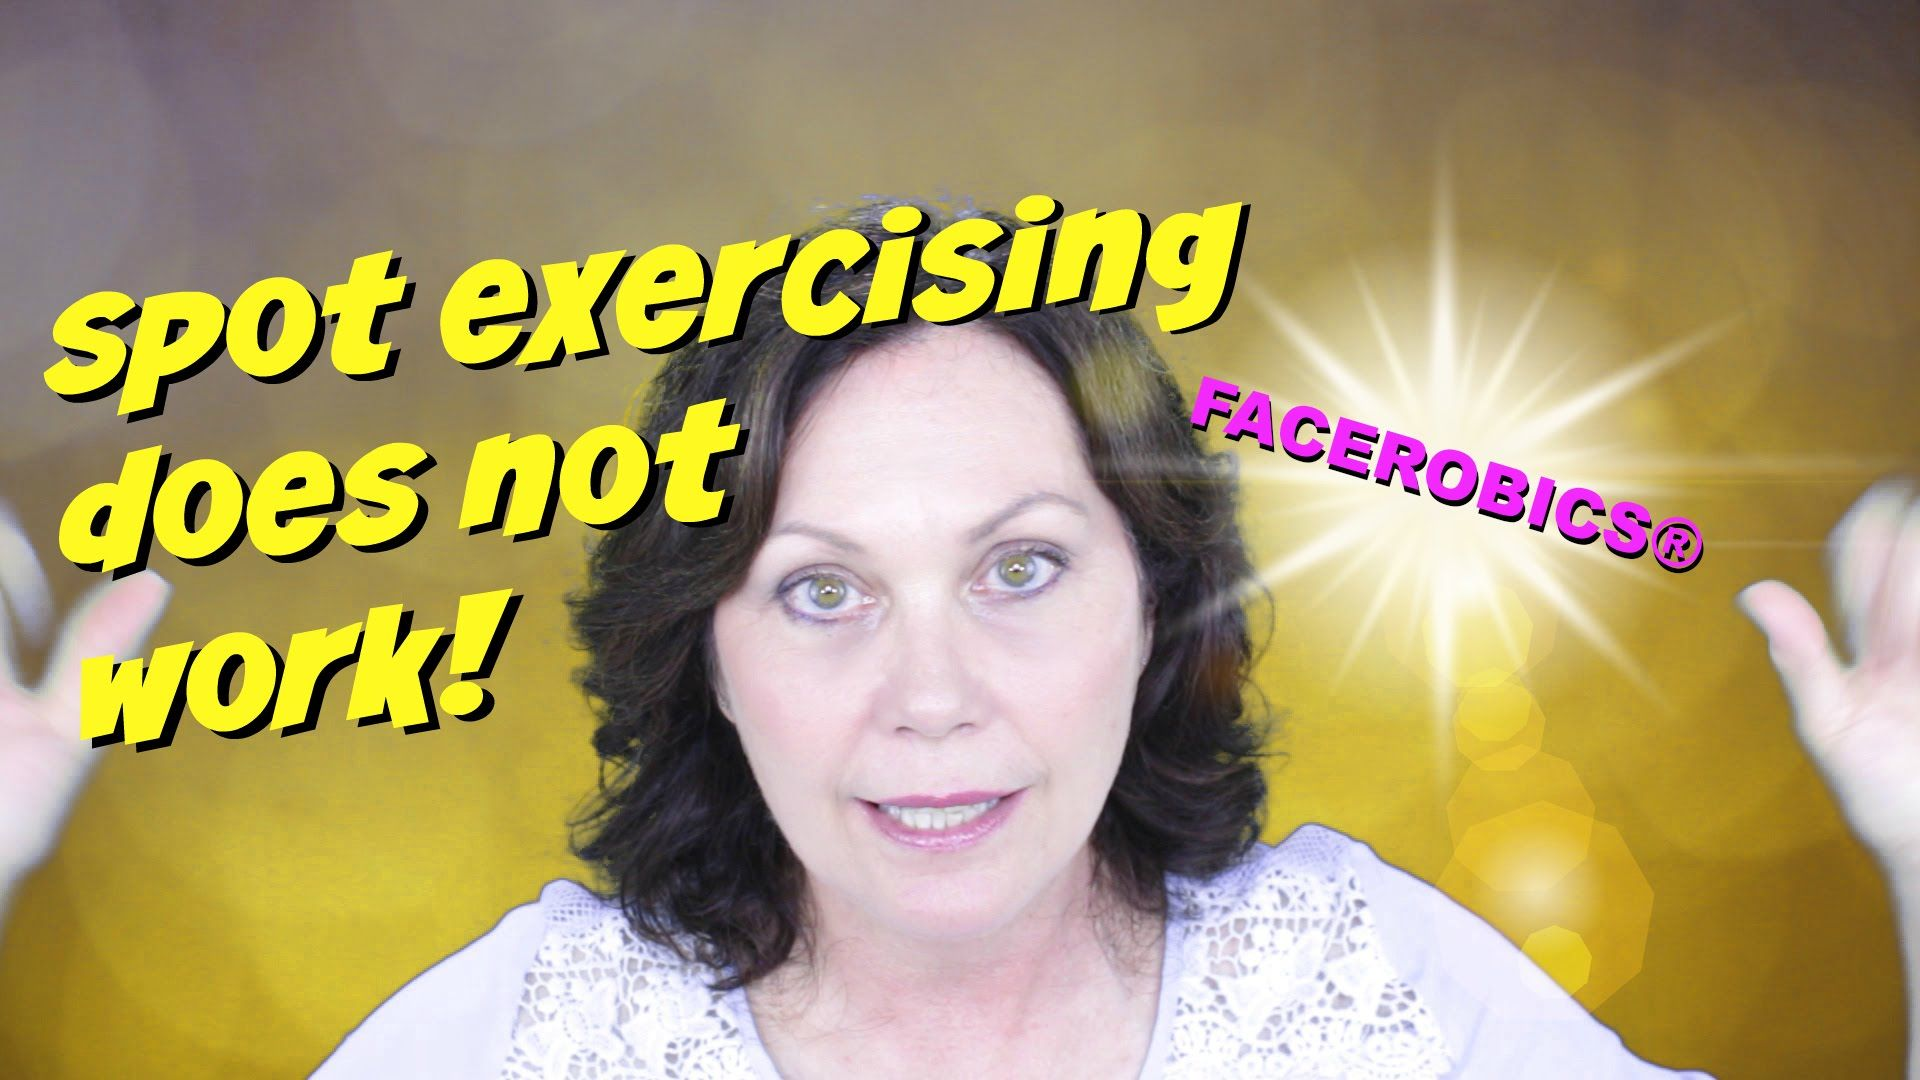 Welcome to FACEROBICS® - Your Face Exercise Coach! Hi Everyone, here is a new video about Why Spot Exercising Does Not Work with the FACEROBICS® Facial Exerc...